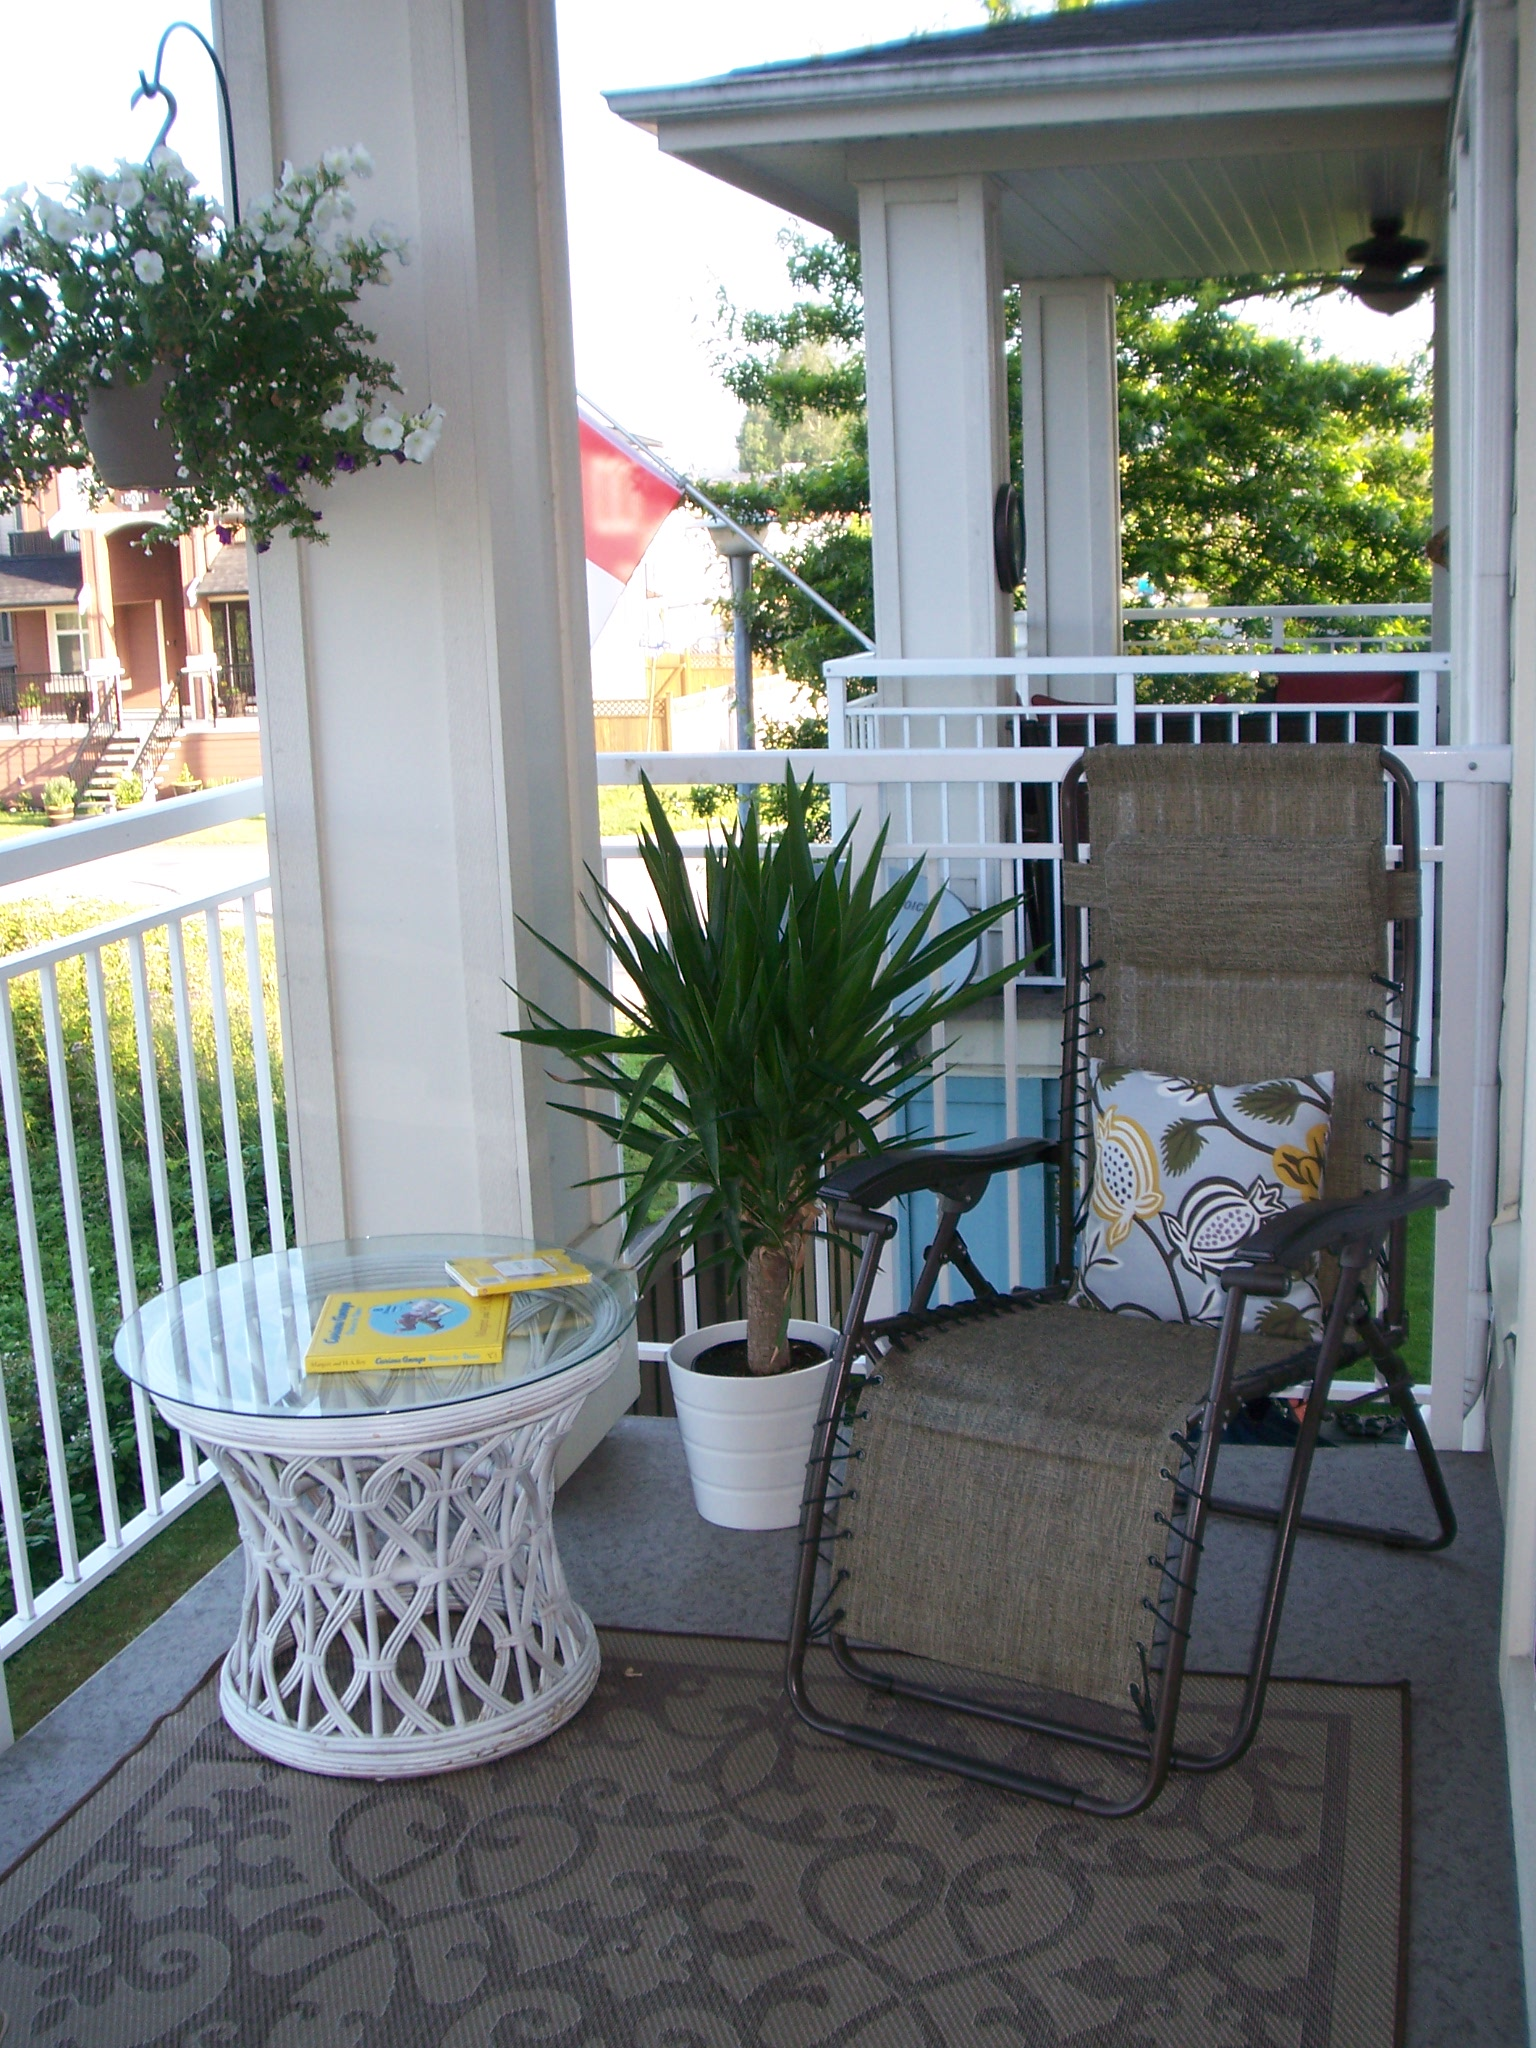 After photo of my sundeck